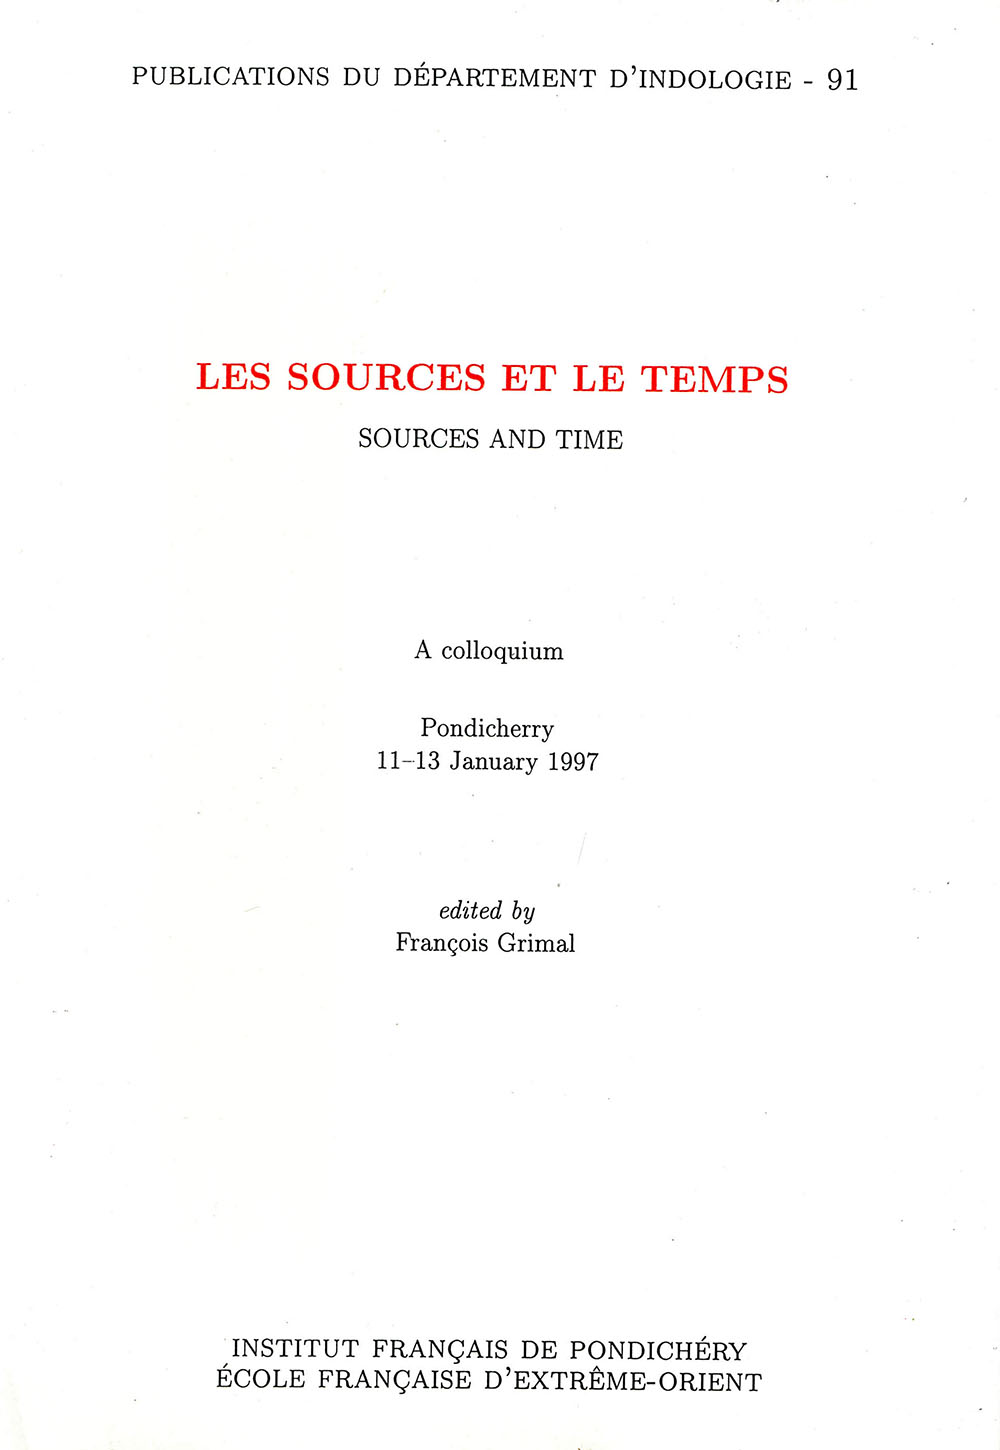 Les sources et le temps = Sources and time. A colloquium. Pondicherry 11-13 January 1997